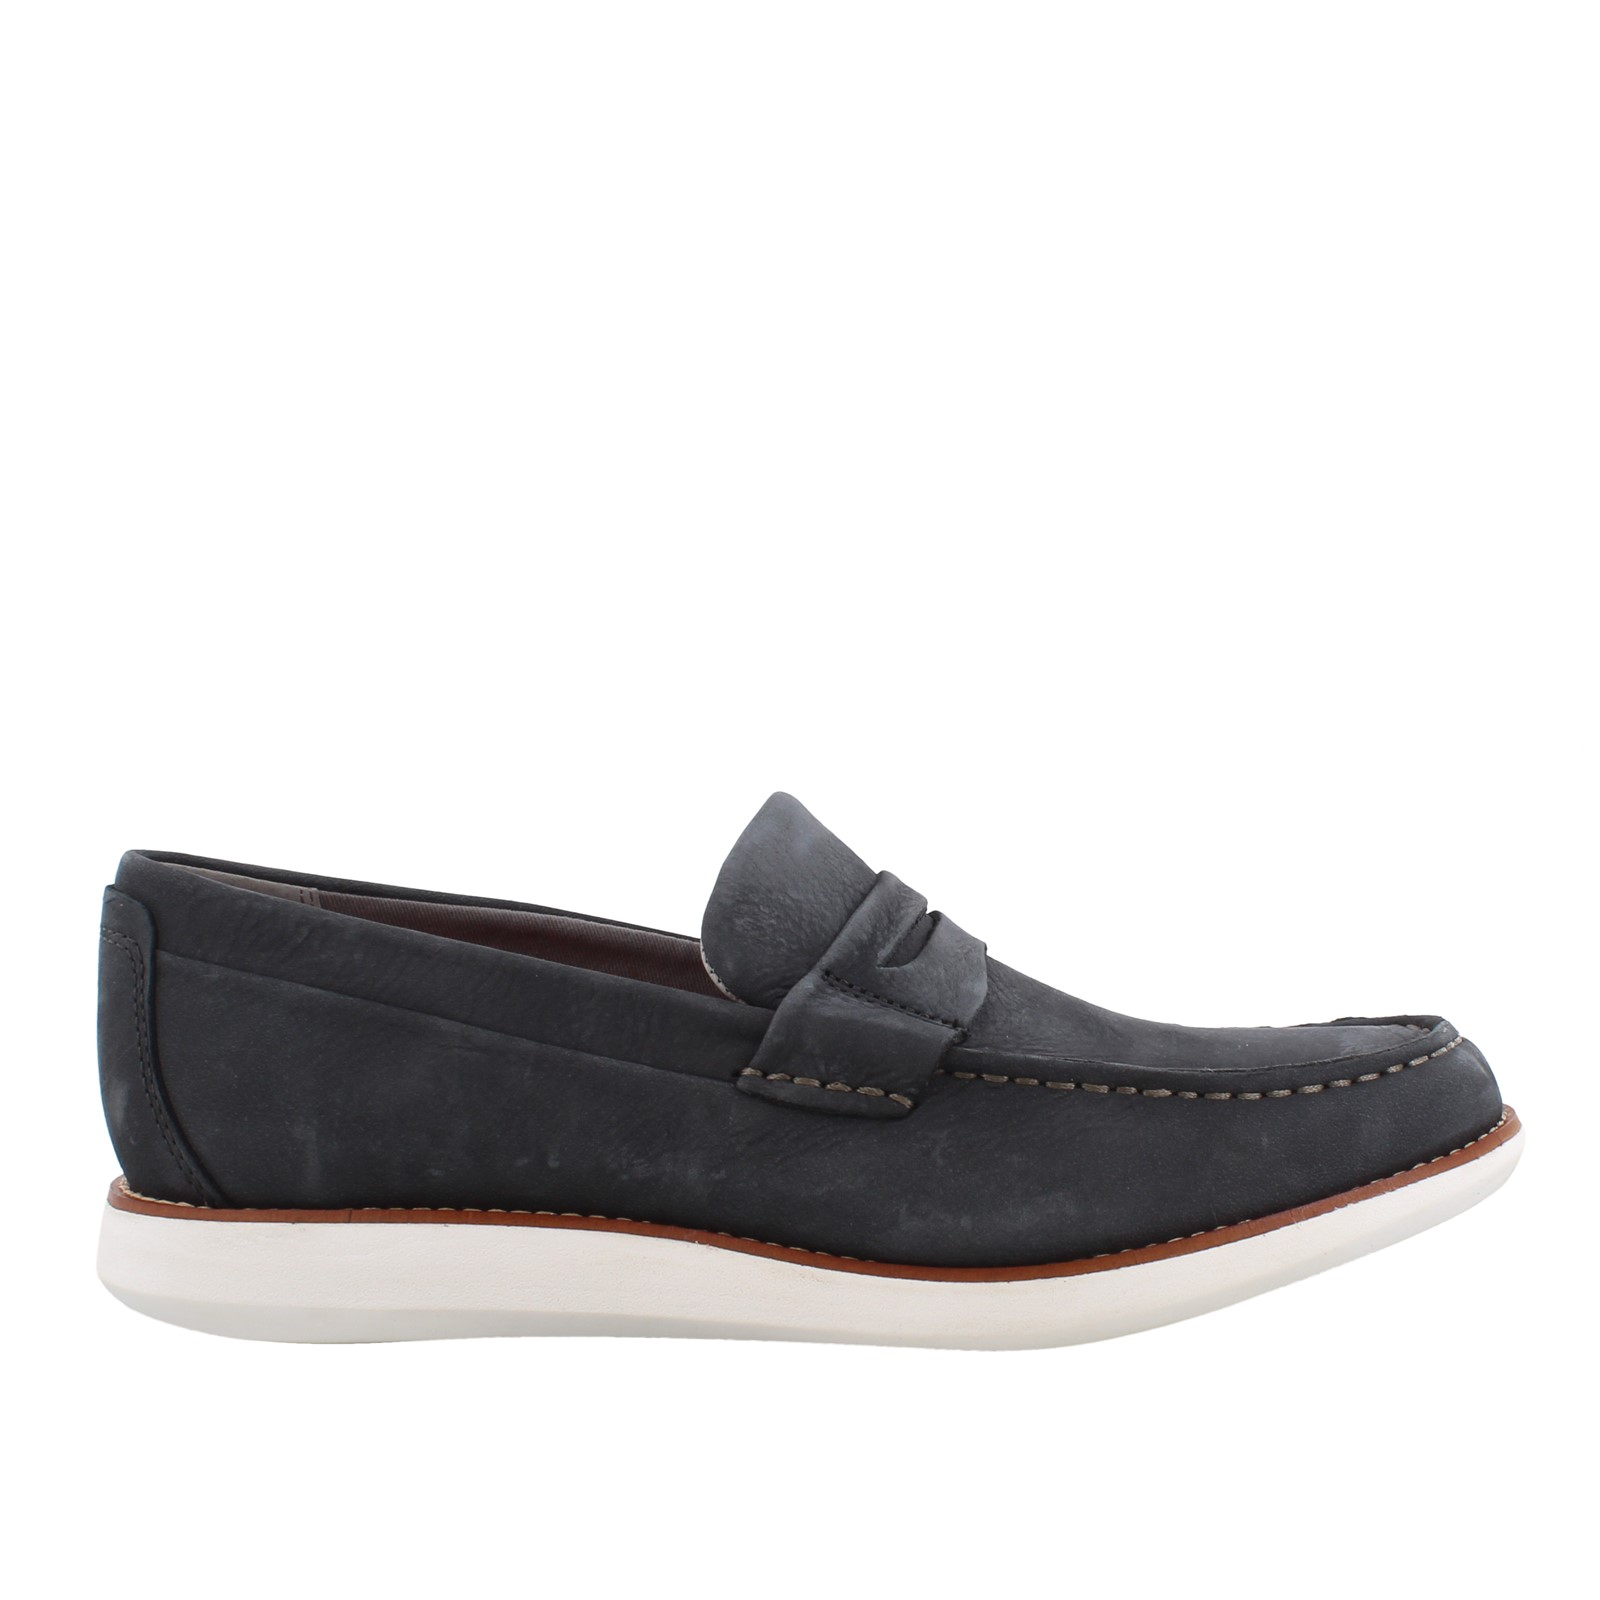 Men's Sperry, Kennedy Penny Loafers